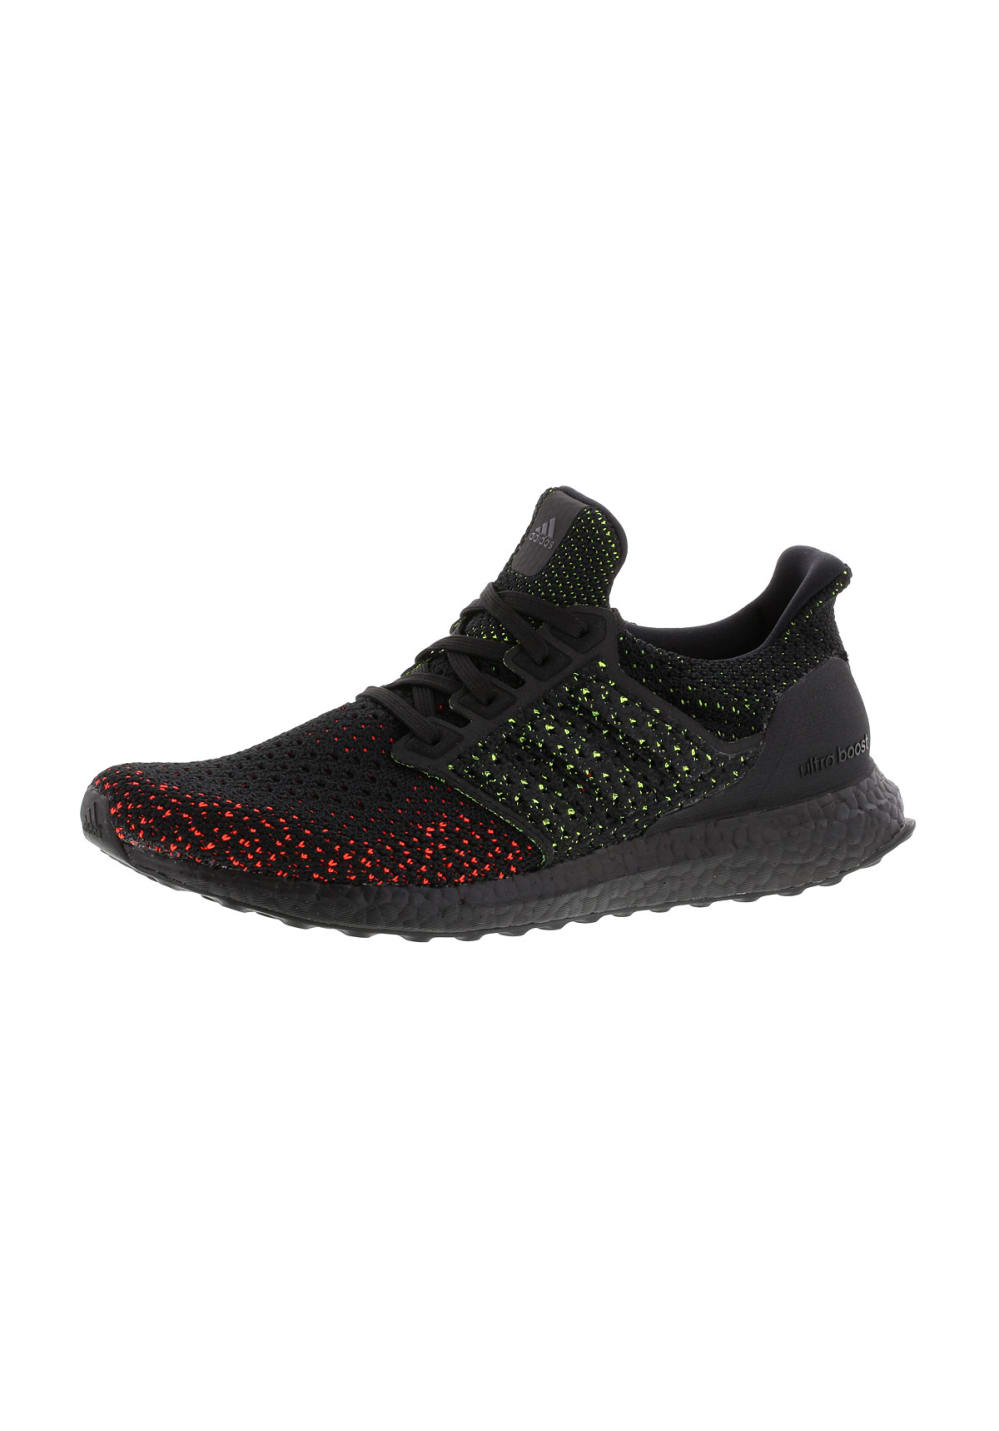 best authentic f12b0 89d30 adidas Ultra Boost Clima - Running shoes for Men - Black